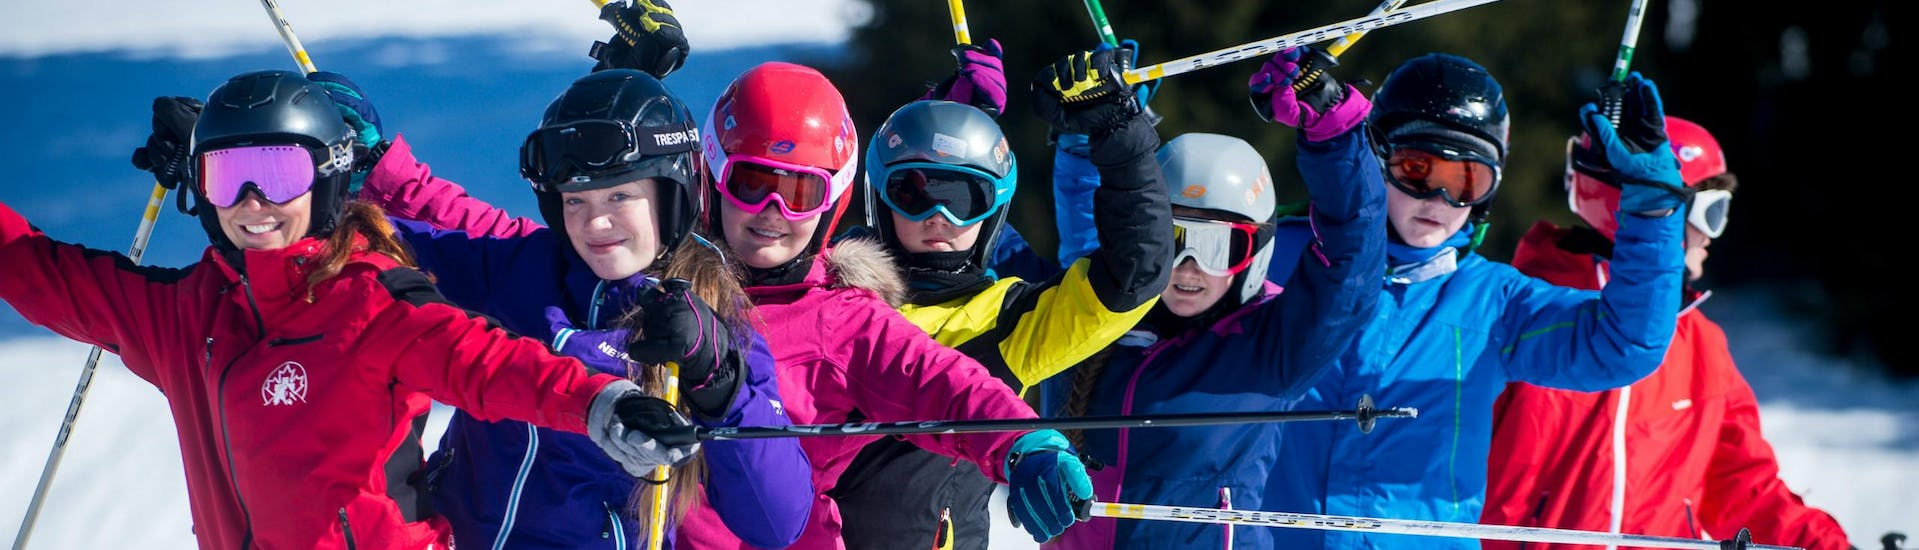 Ski Instructor Private for Kids - Ages 5+ years